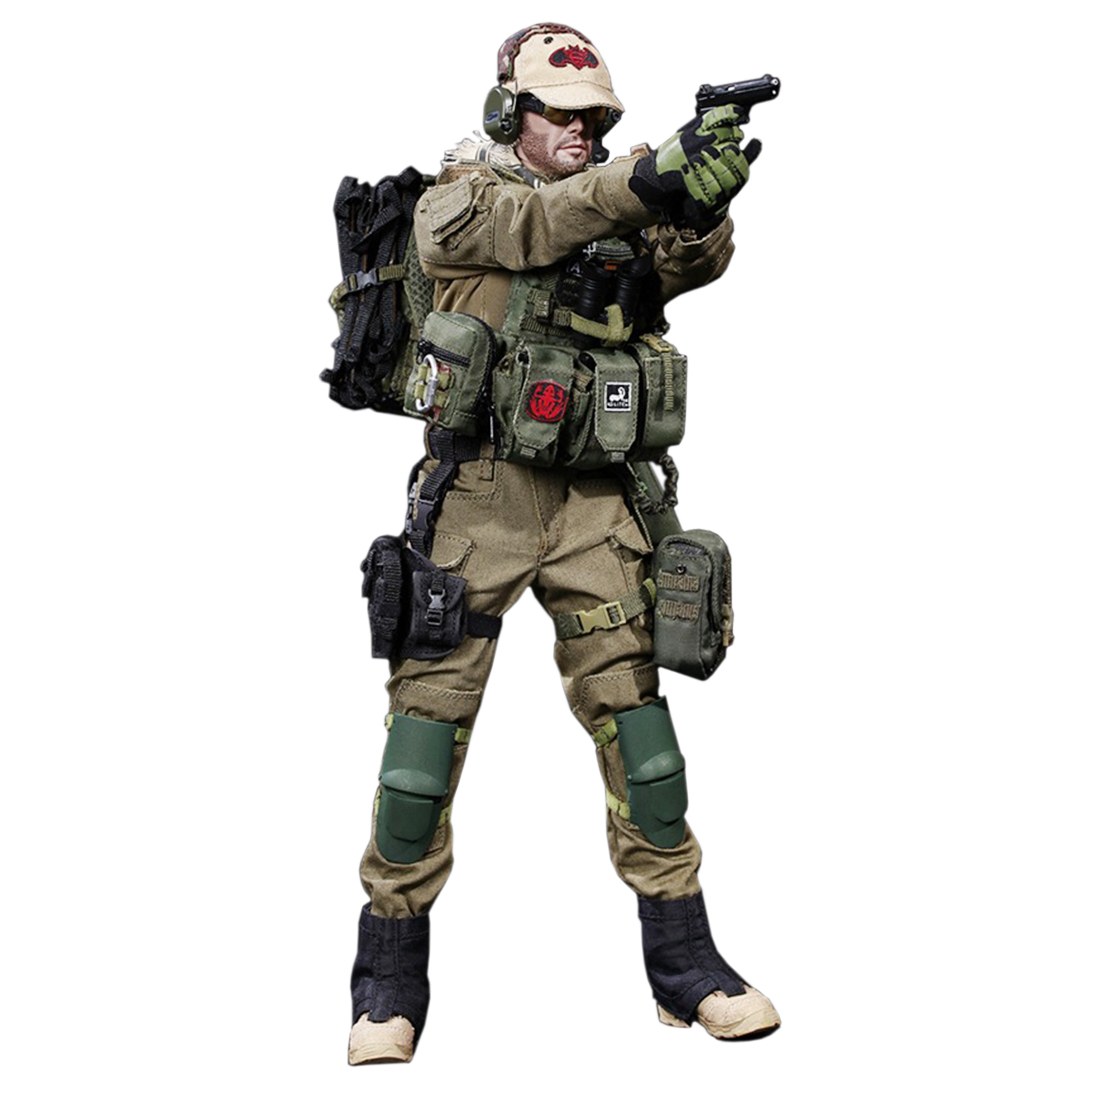 30cm 1/6 Israeli Special Forces Movable Figure Military Soldier Model Building Blocks Toys Model Kits For Adults Children Kids30cm 1/6 Israeli Special Forces Movable Figure Military Soldier Model Building Blocks Toys Model Kits For Adults Children Kids